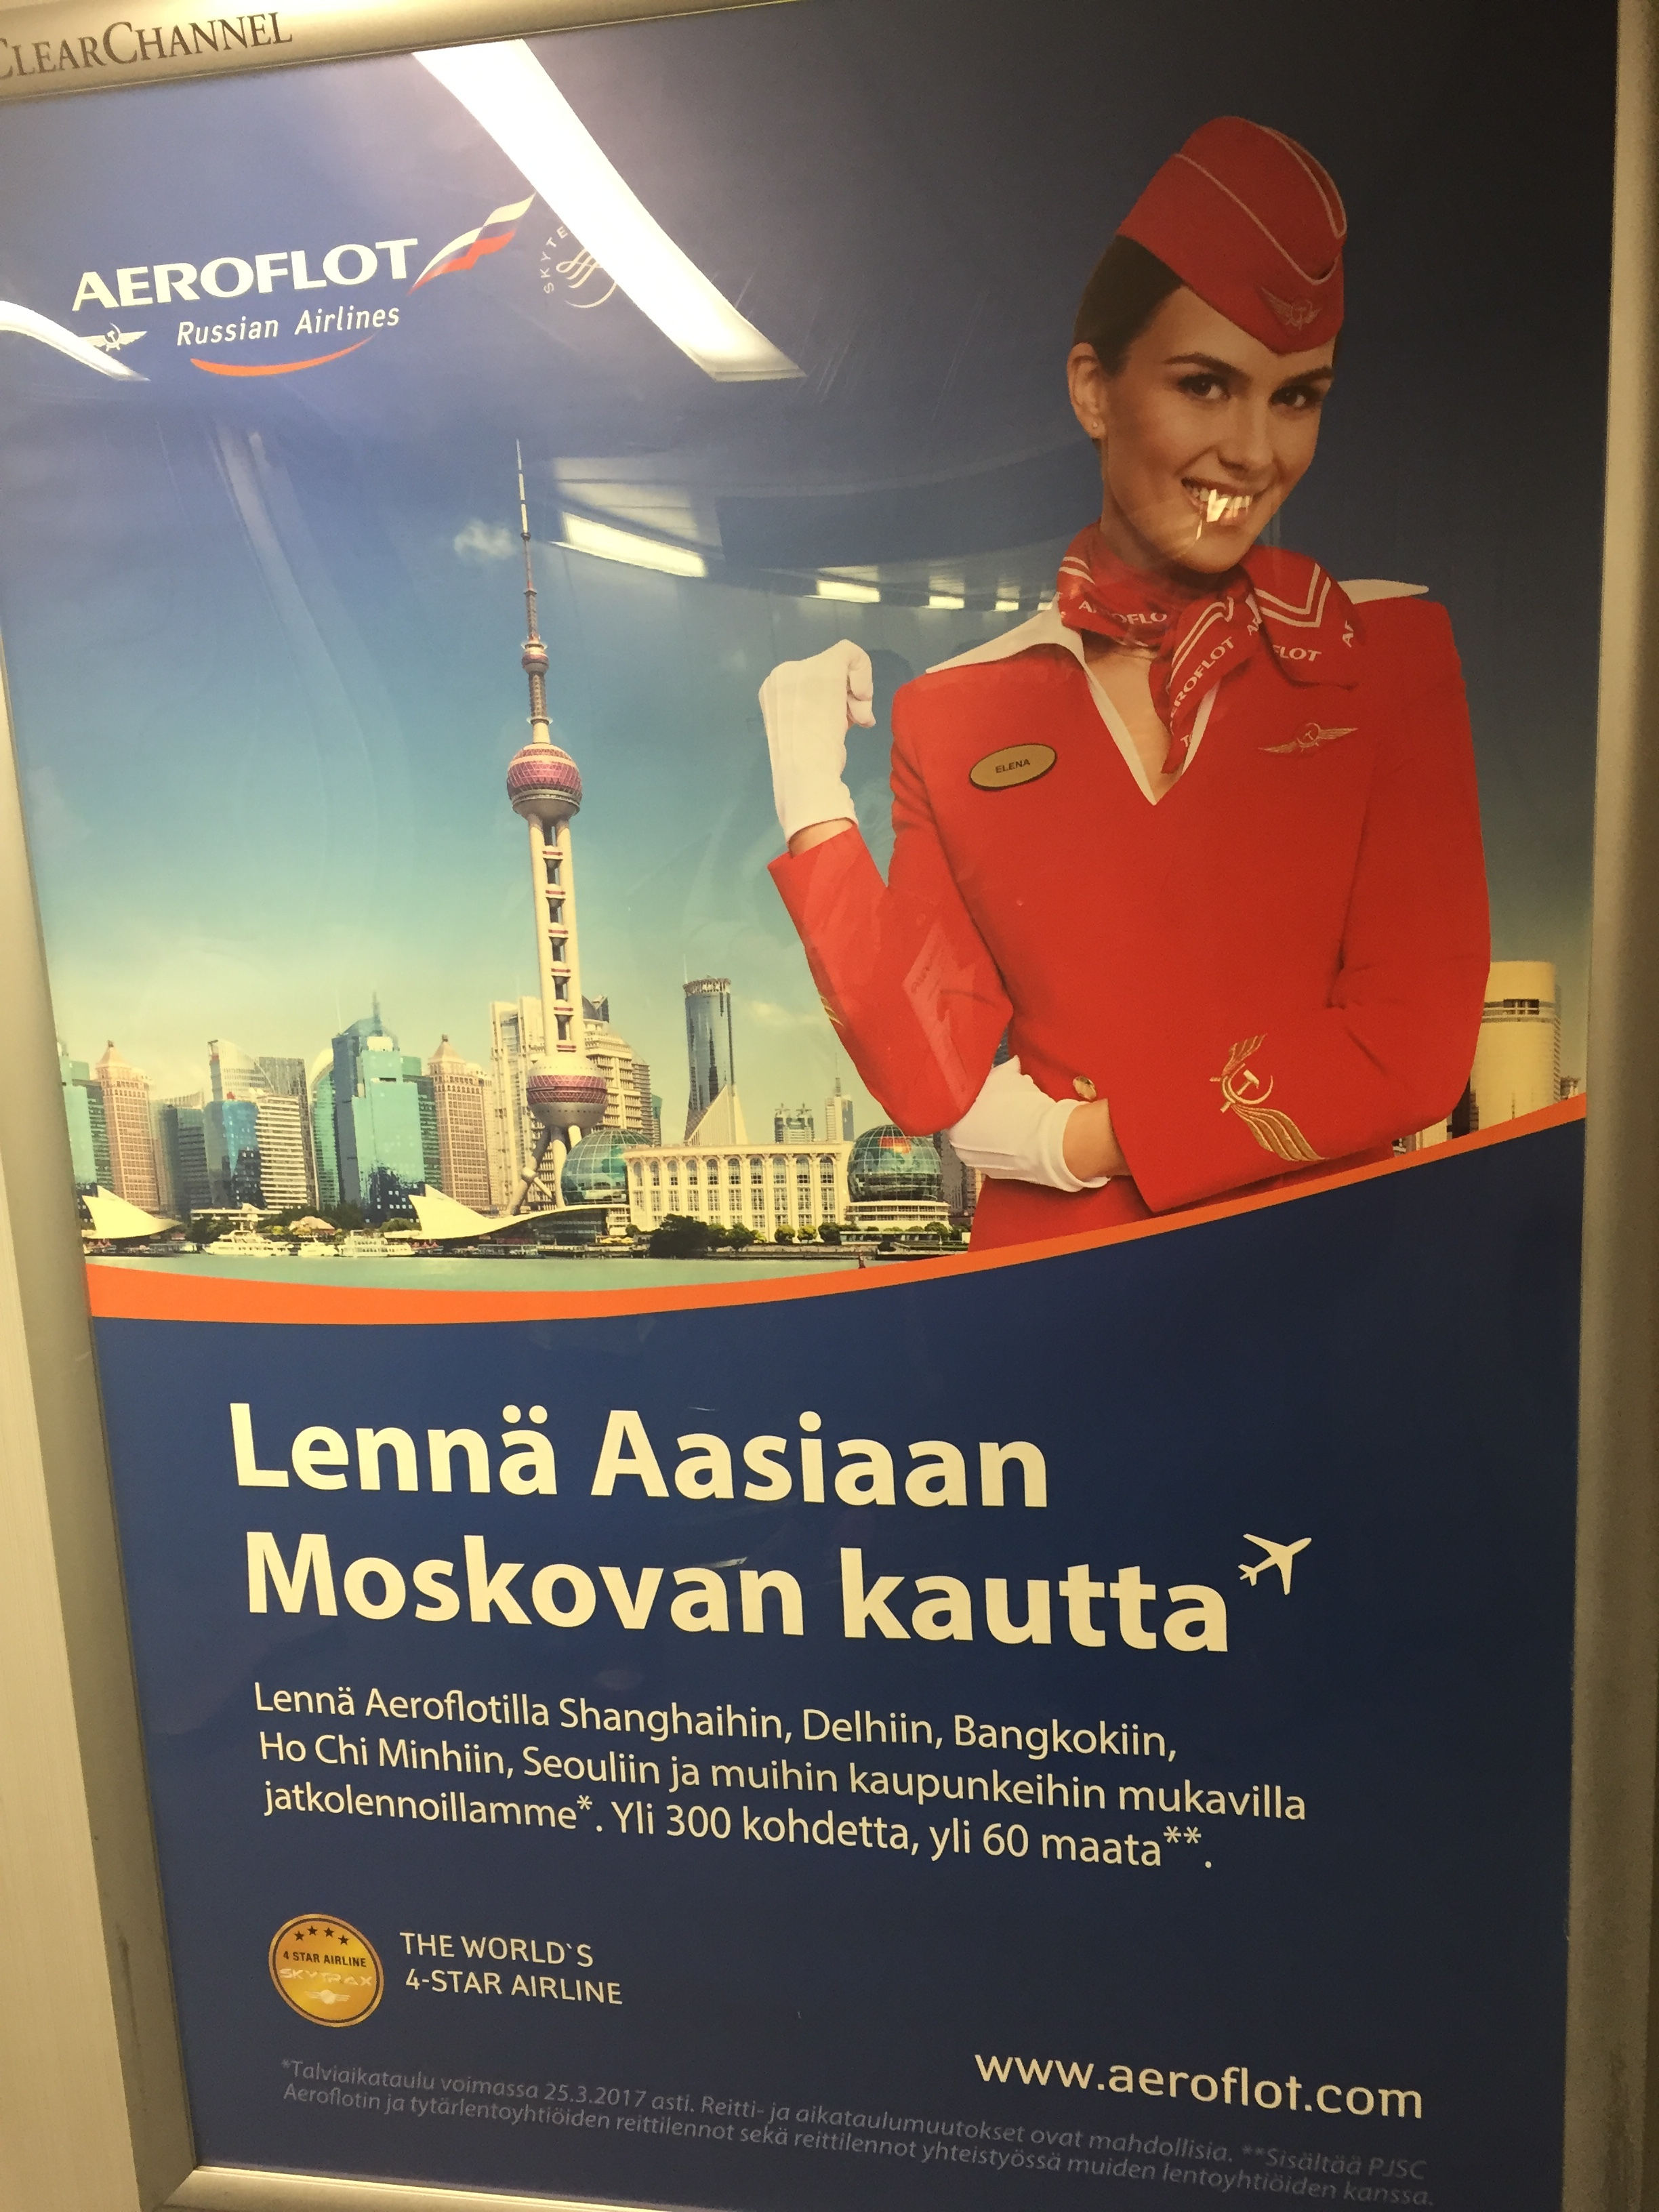 Interesting to see that Aeroflot advertises its Asian connections via Moscow...in Helsinki, which is a hub that specializes precisely on Europe to Asia connections